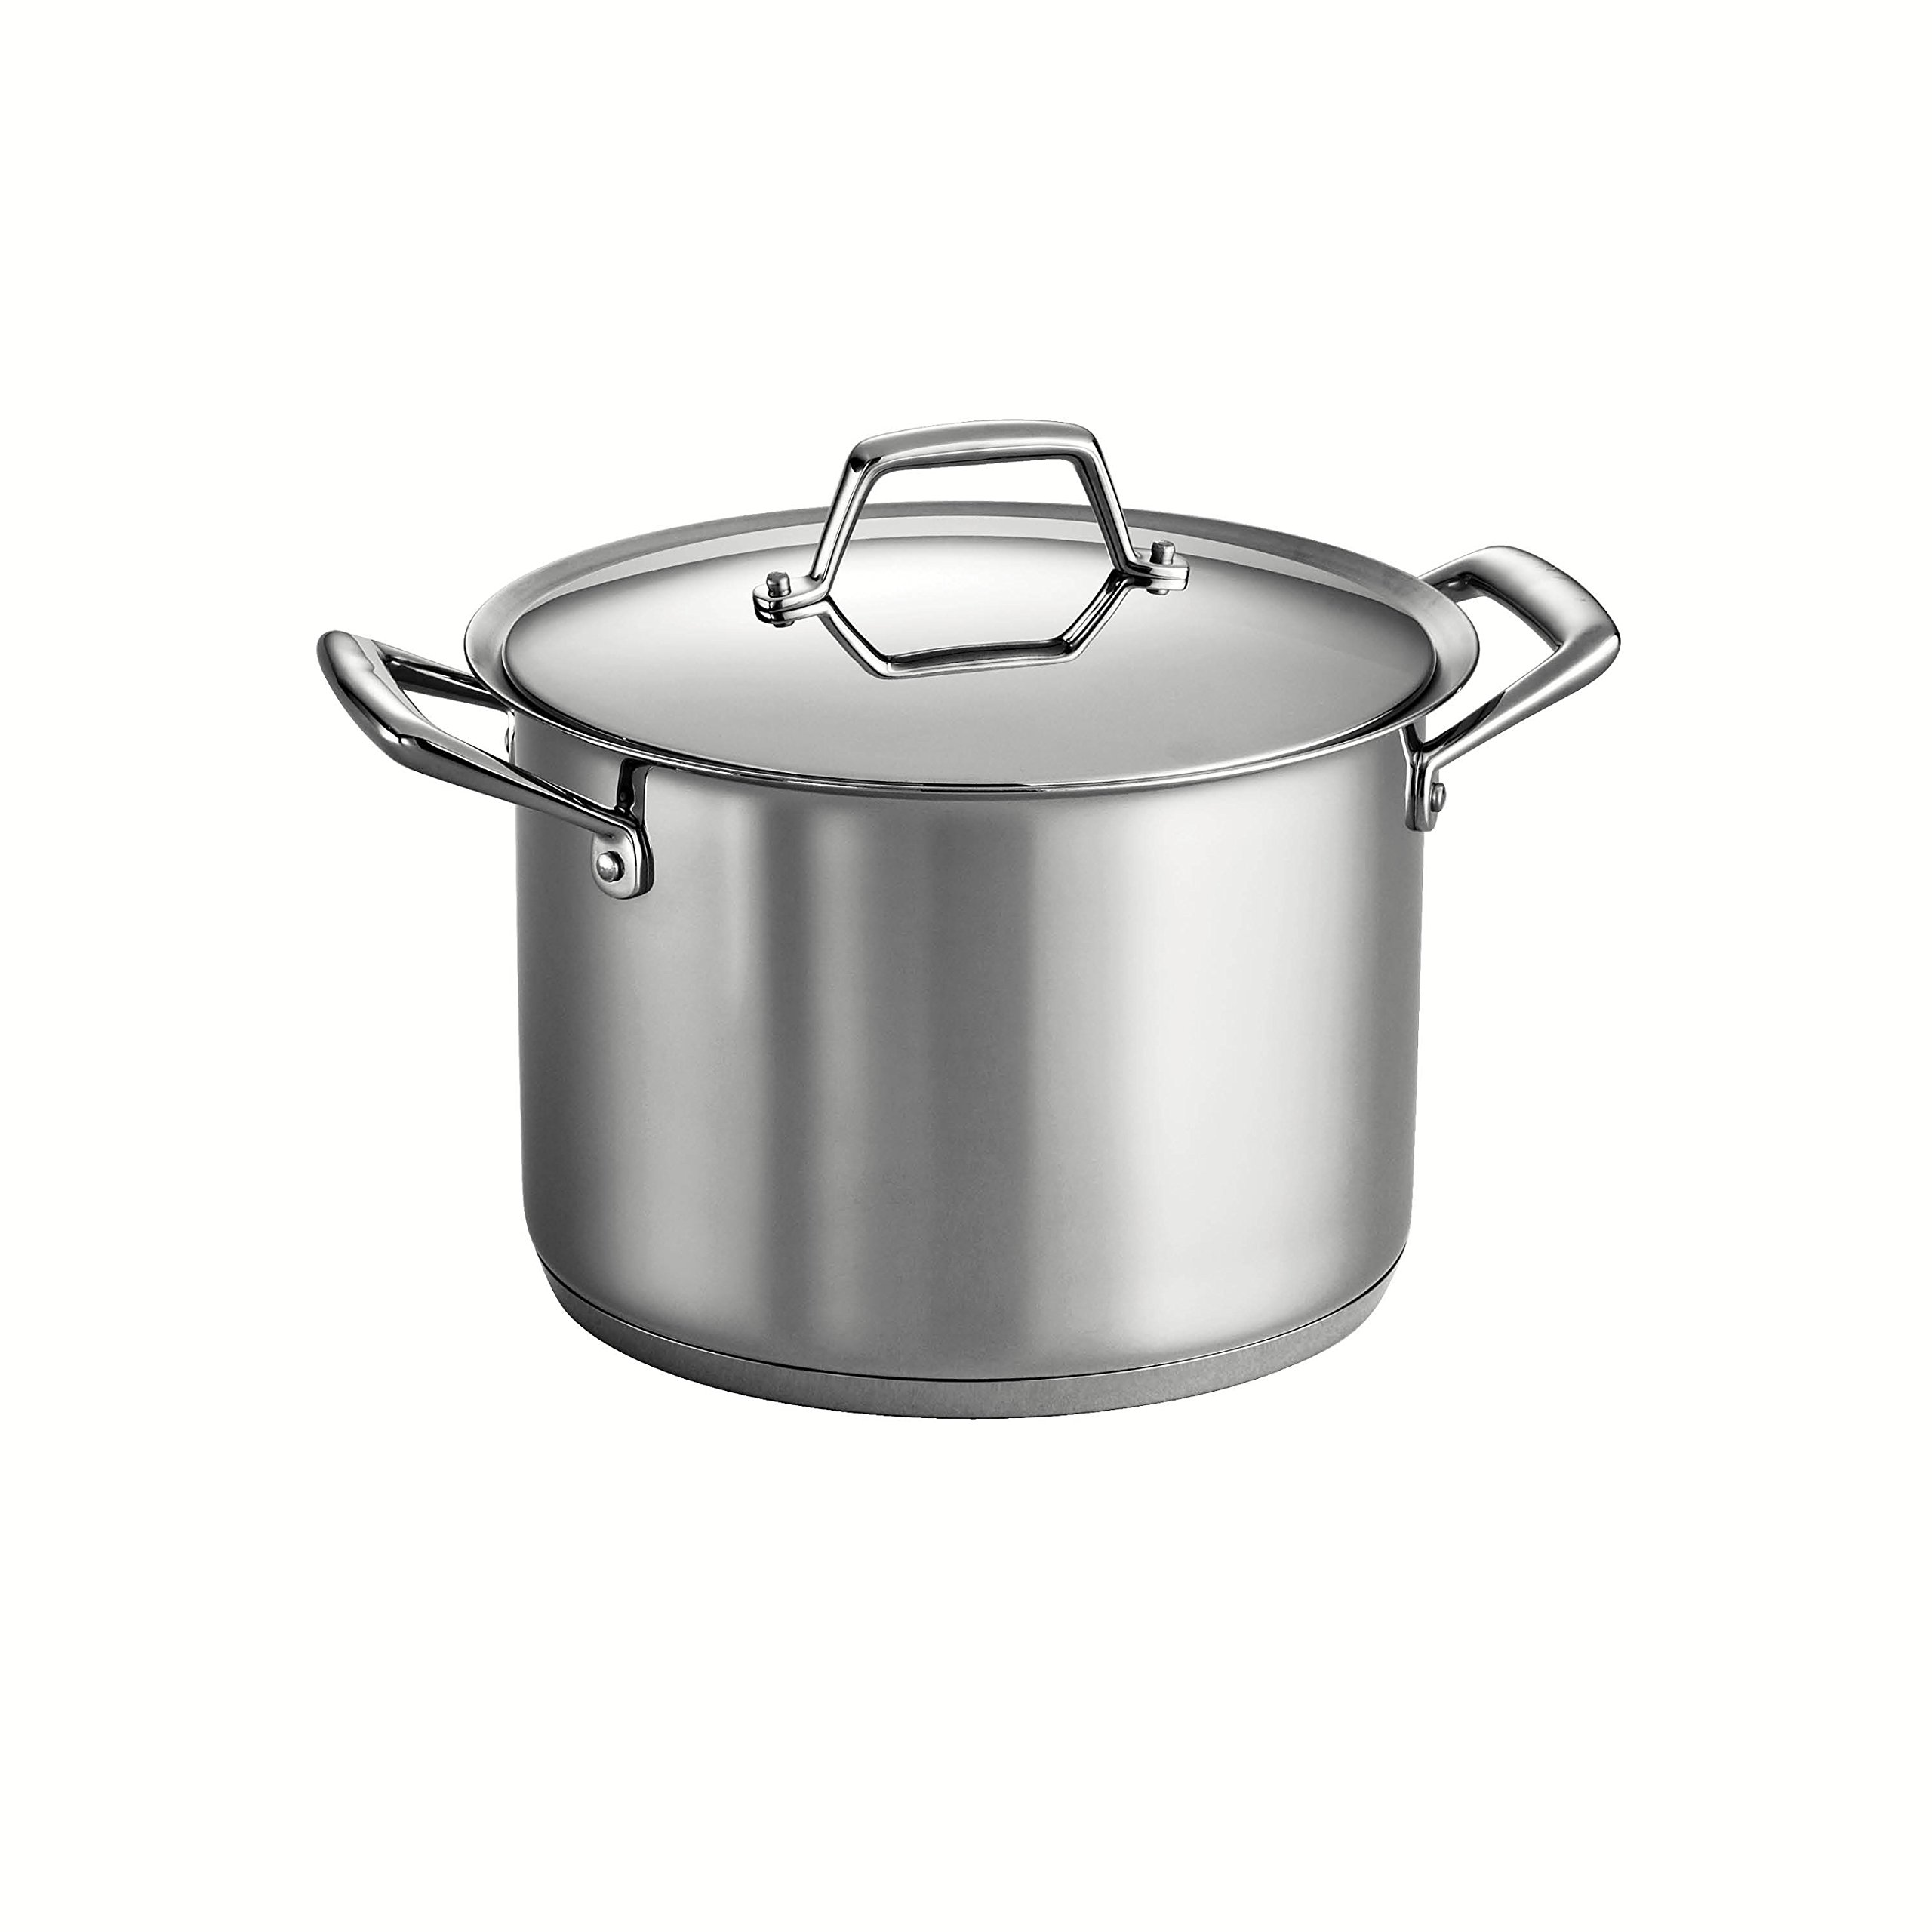 Tramontina Prima 12 Quart 18/10 Stainless Steel Tri-Ply Base Covered Stock Pot